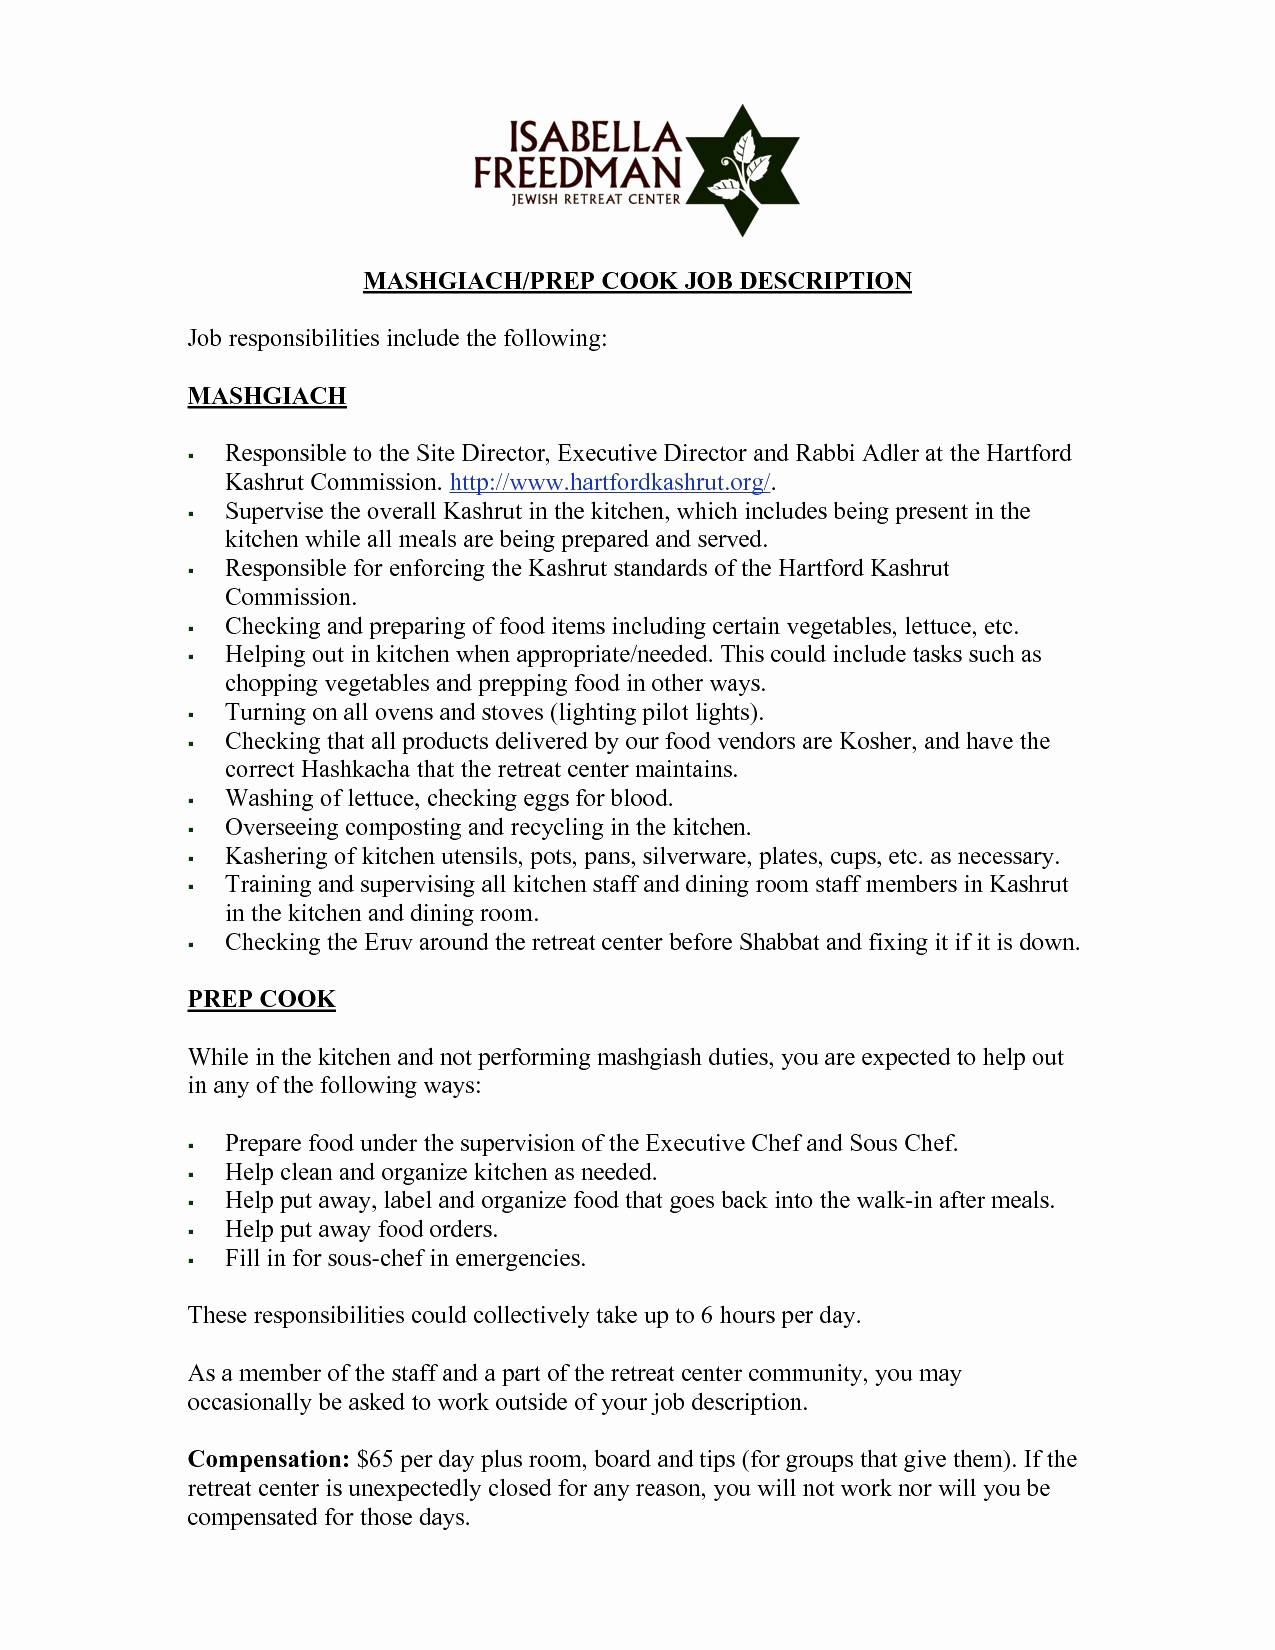 Board Director Cover Letter Nice Cover Letter For Board Images Gallery Resignation Letter